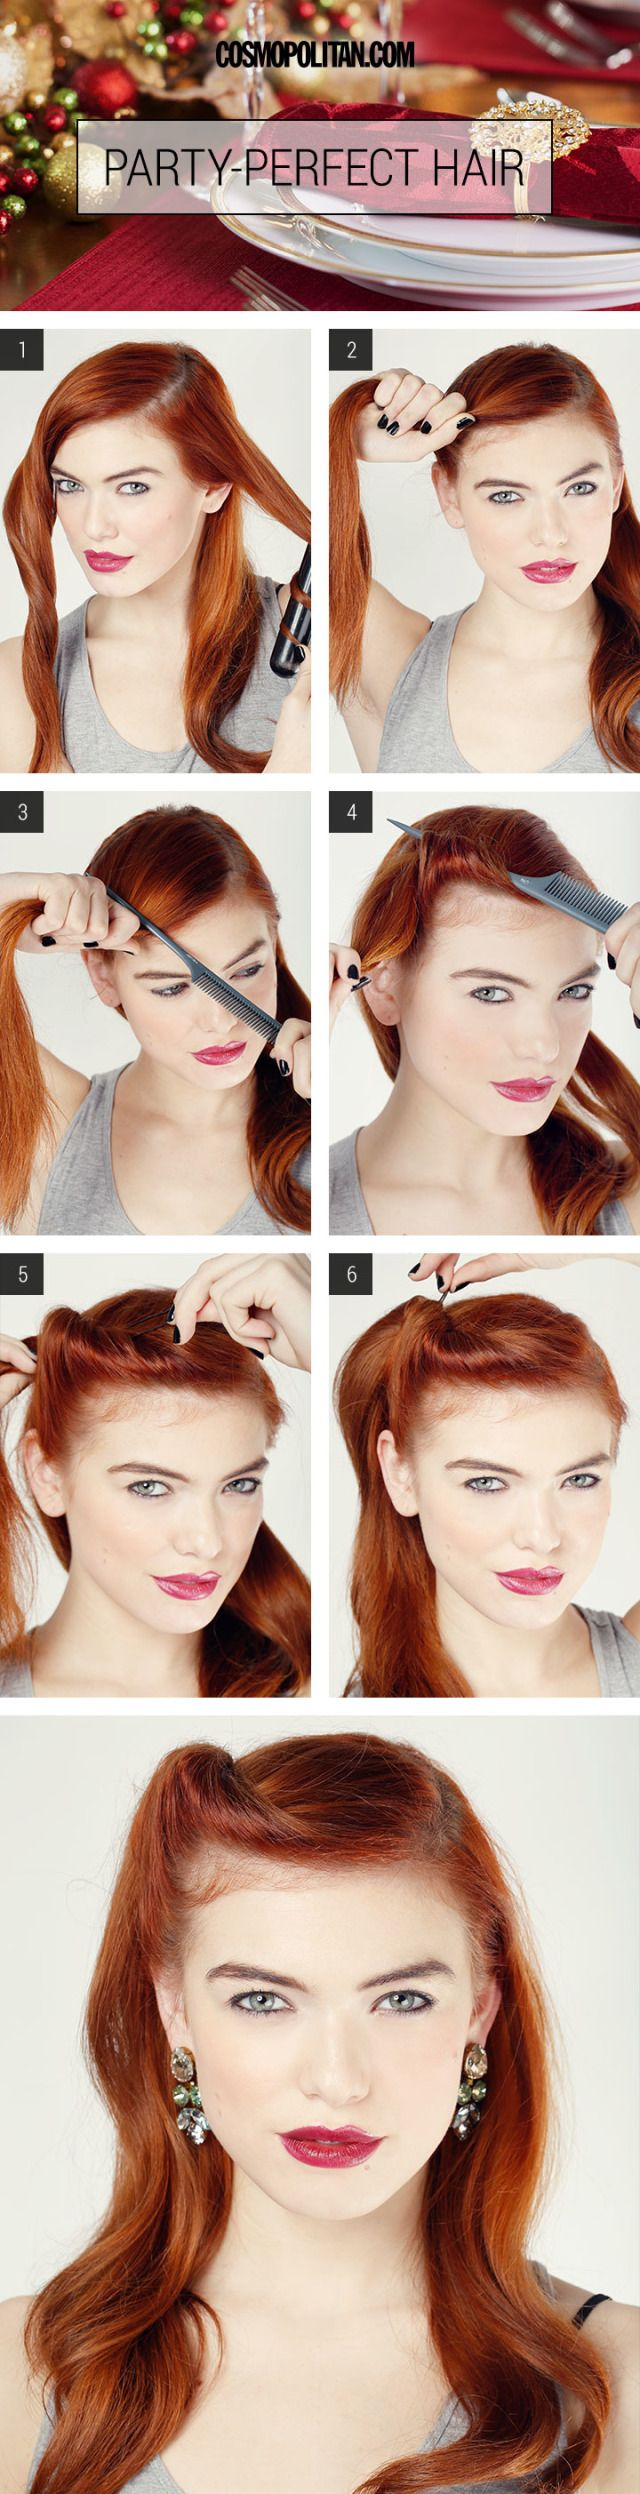 12 Super Easy Hair Looks Every Woman Can Do In 5 Minutes Retro Hairstyles Tutorial Retro Hairstyles Victory Roll Hair